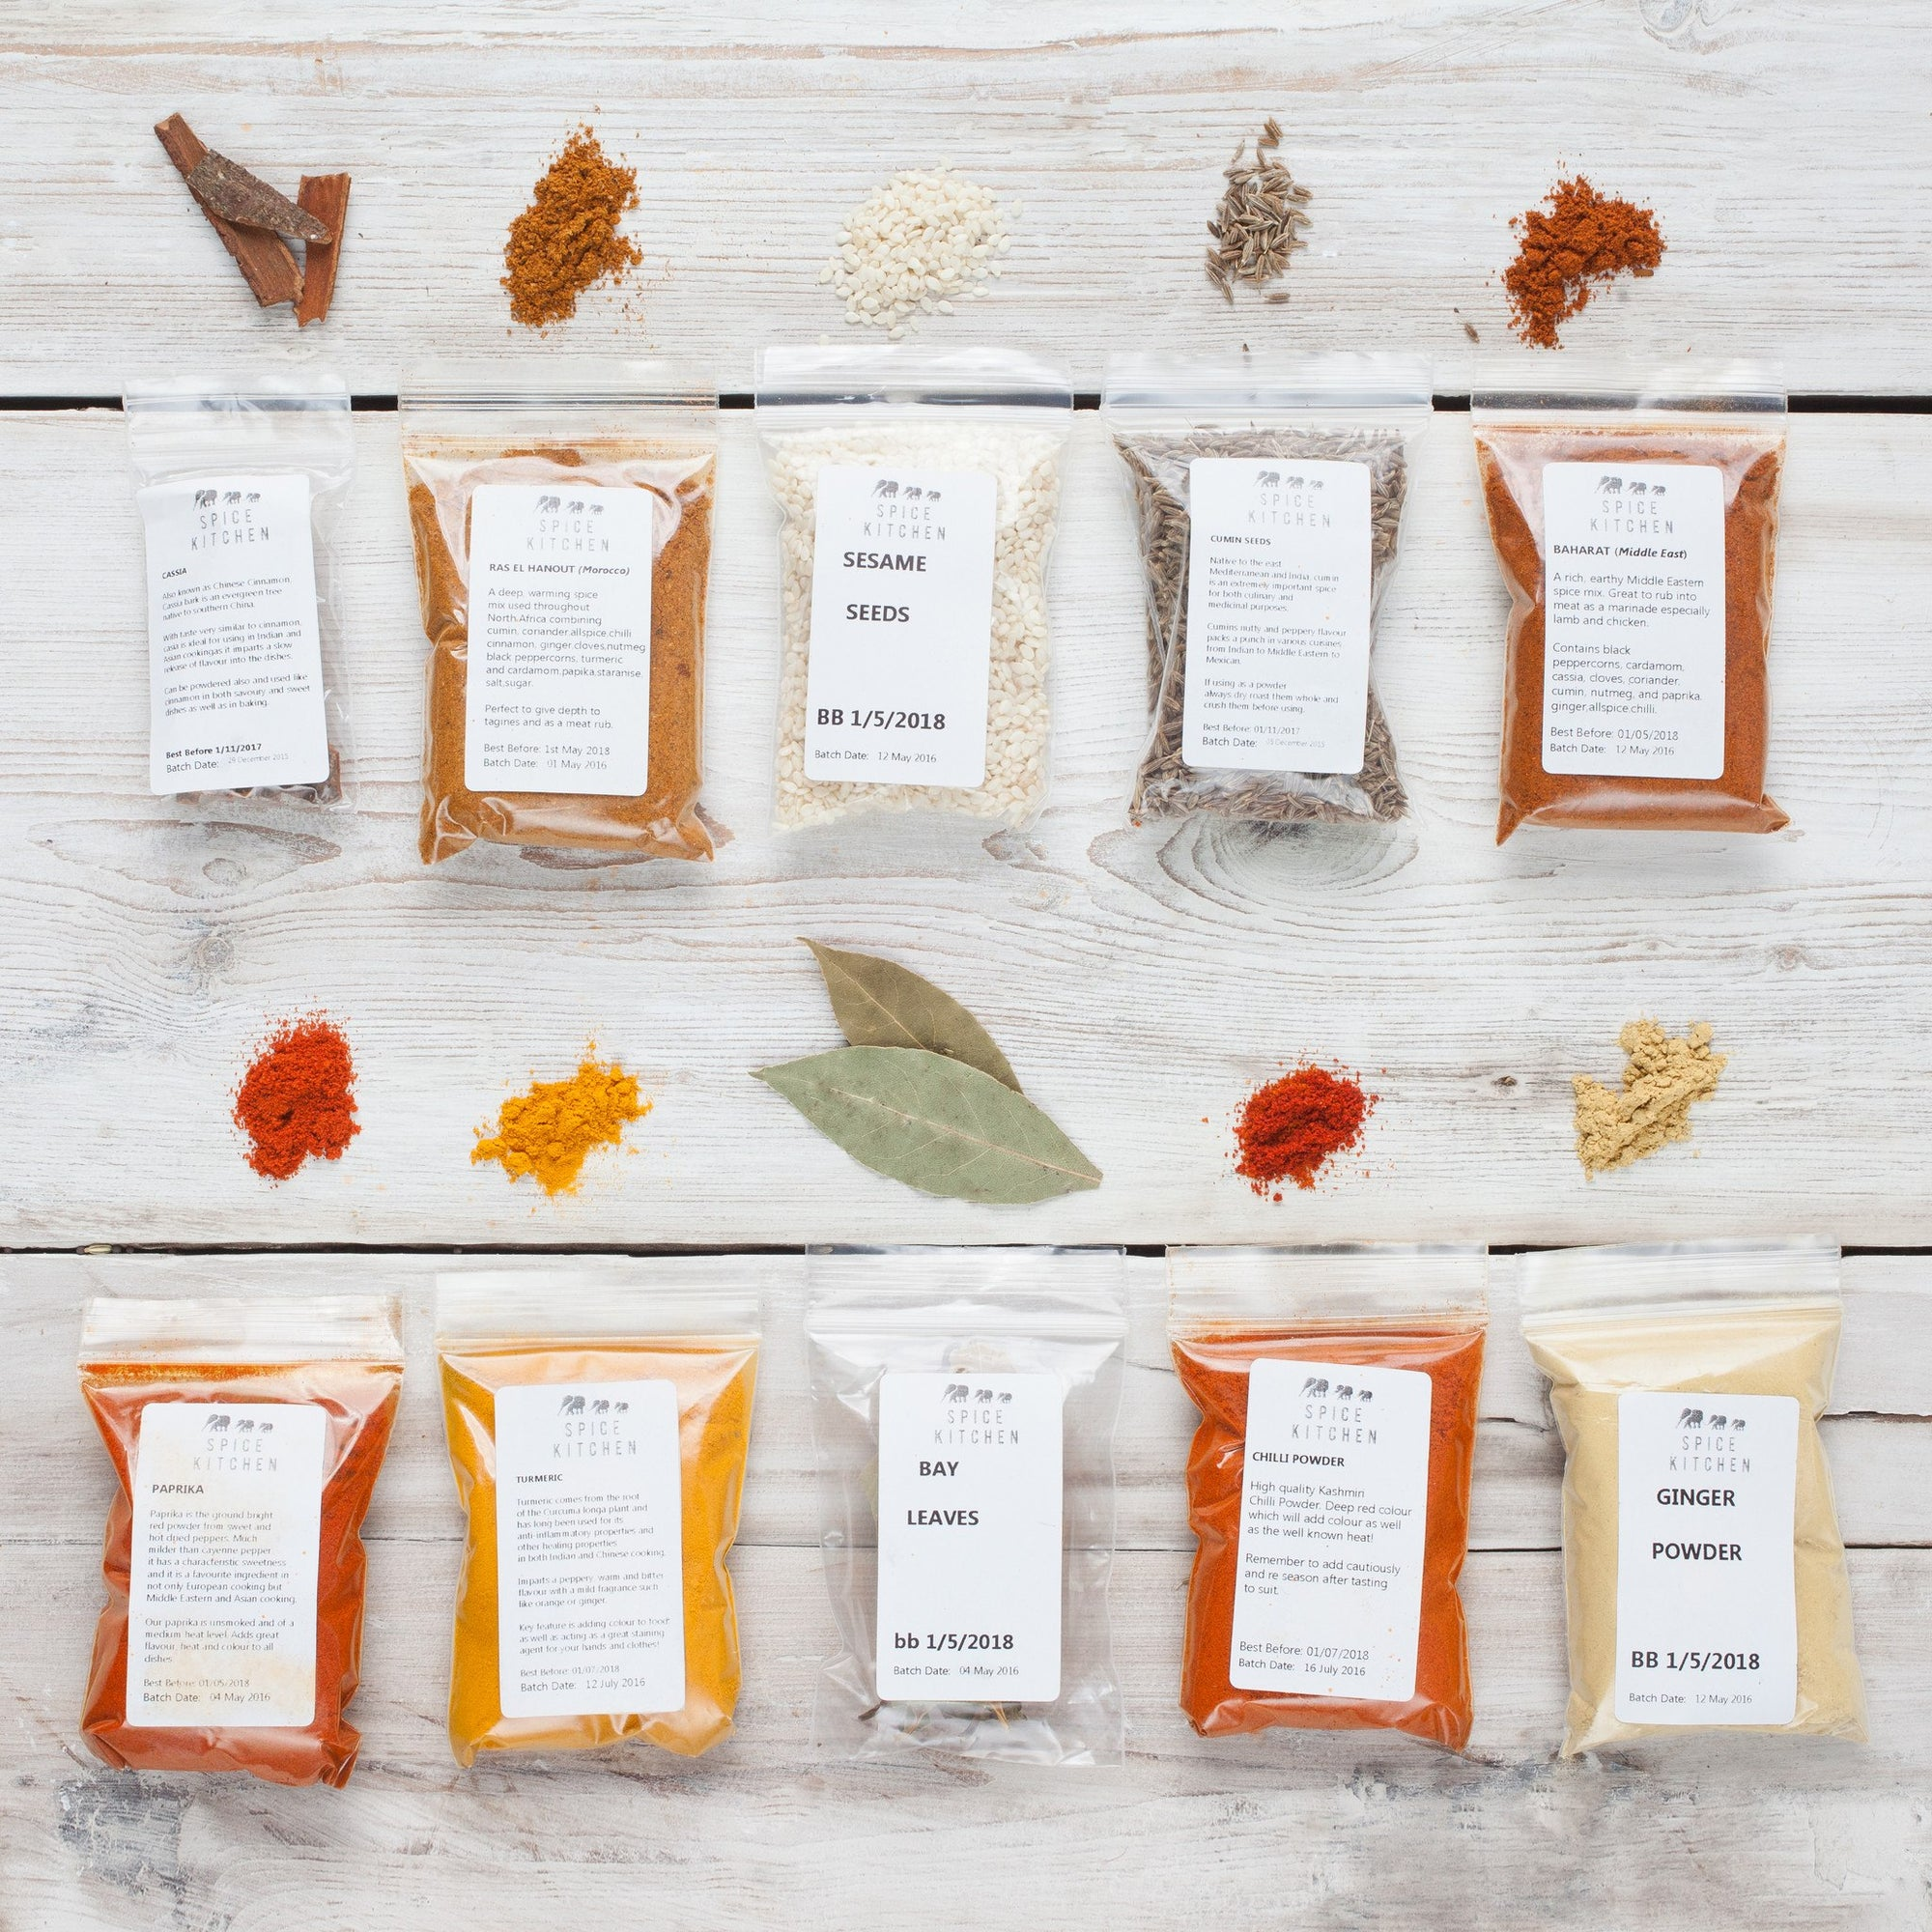 Spice Refills - Spice Pic 'n' Mix! Choose from over 75 items - Spice Kitchen - Spices, Spice Blends, Gifts & Cookware